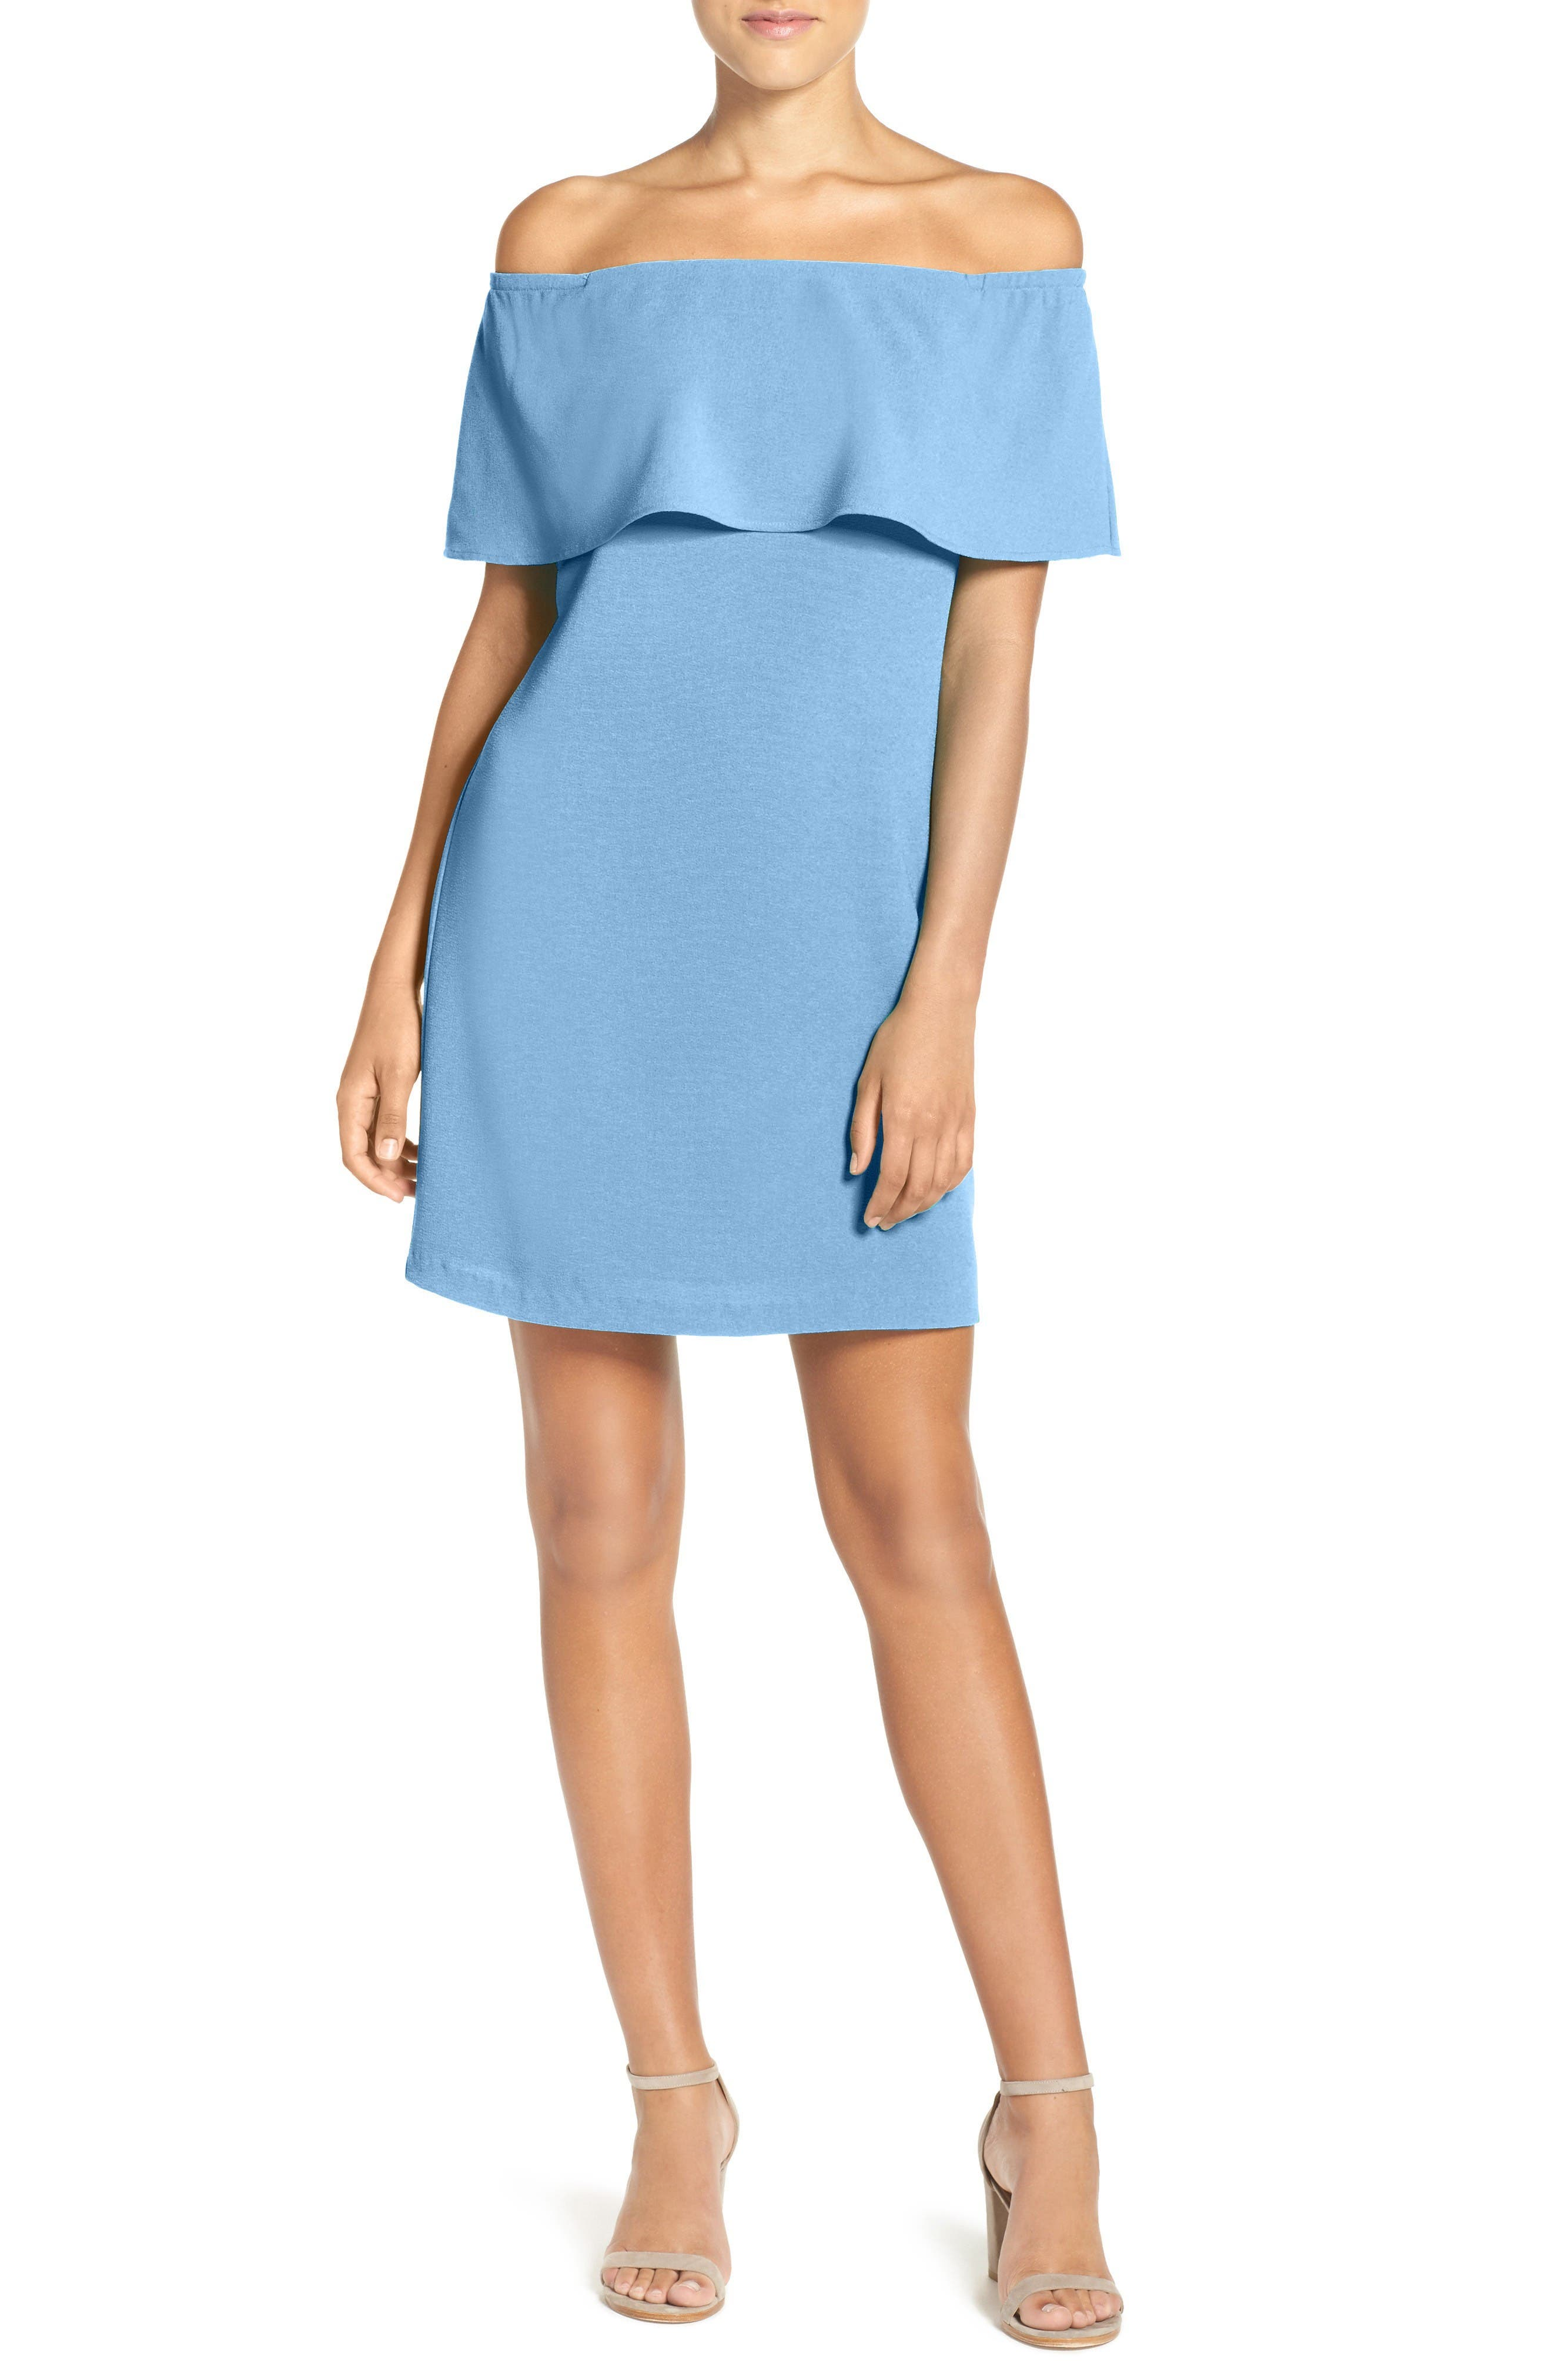 CHARLES HENRY,                             Off the Shoulder Dress,                             Main thumbnail 1, color,                             455